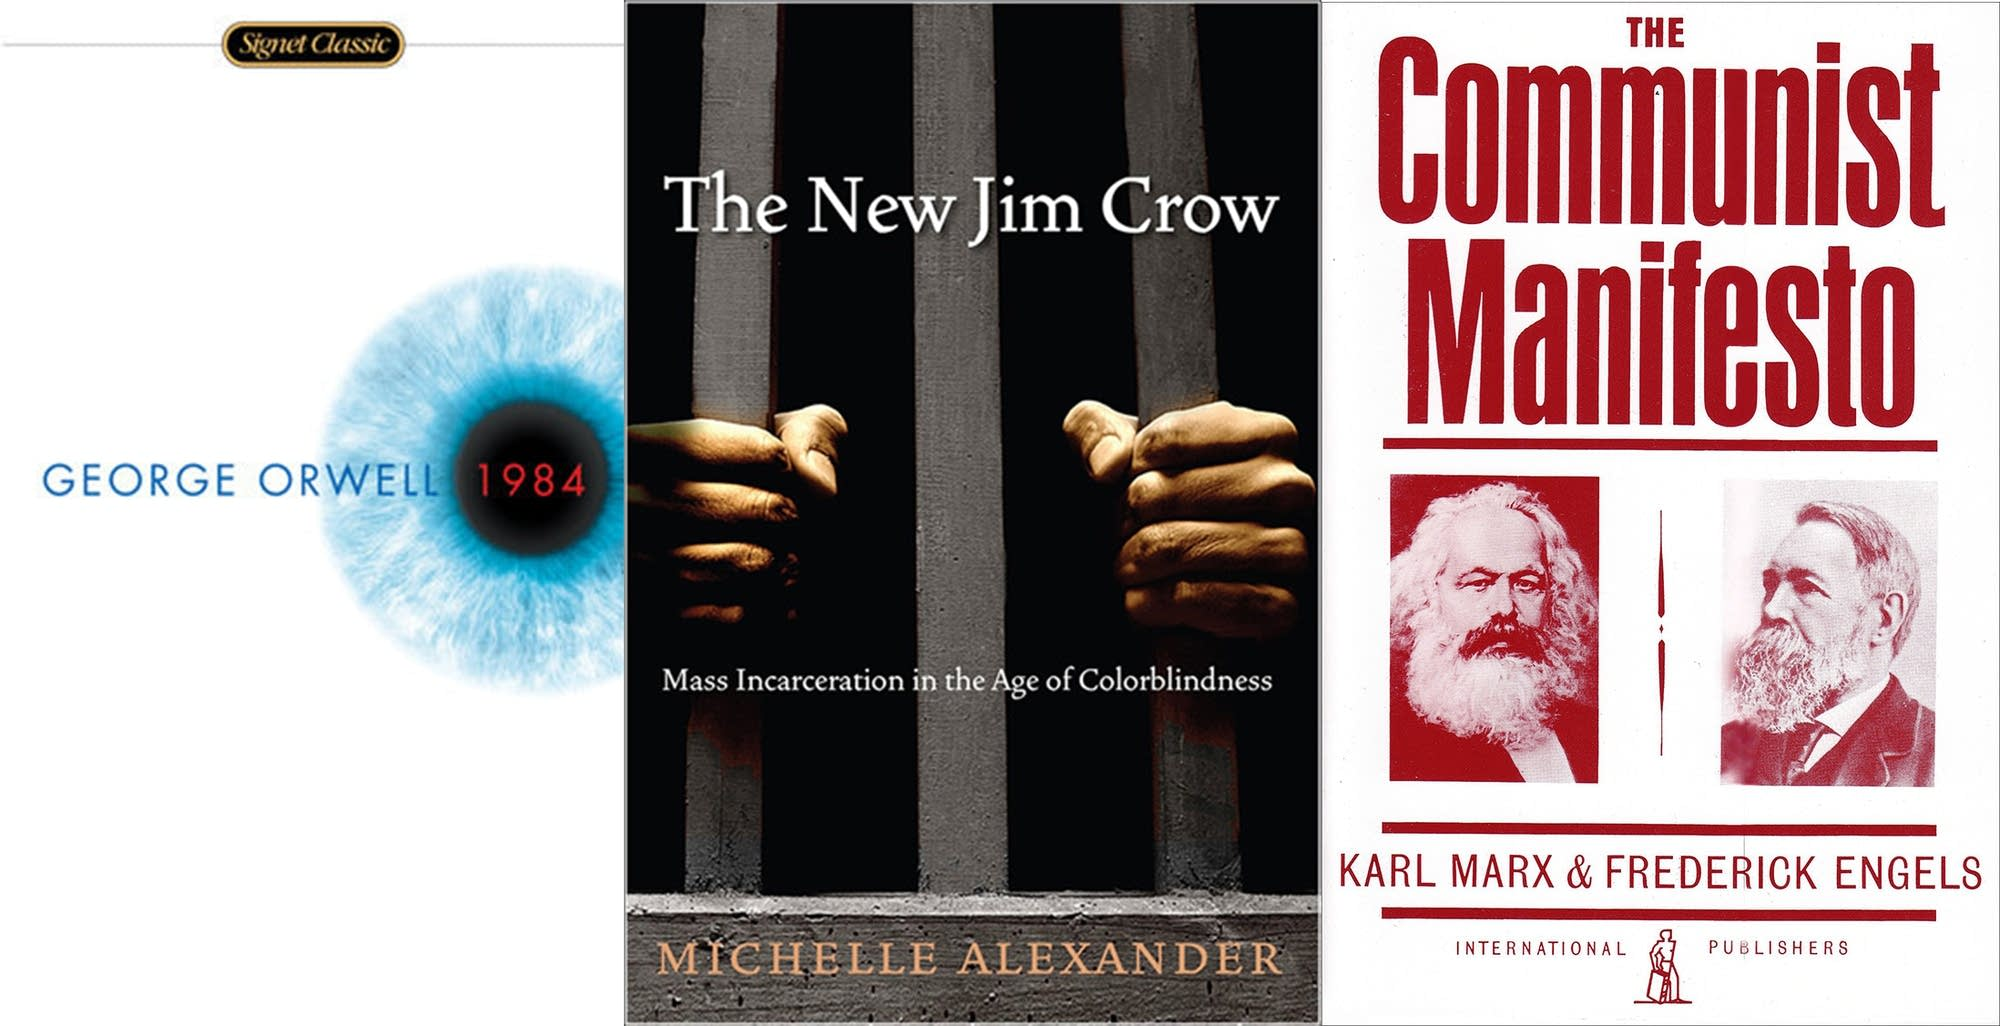 Recent best-sellers at Symposium Books